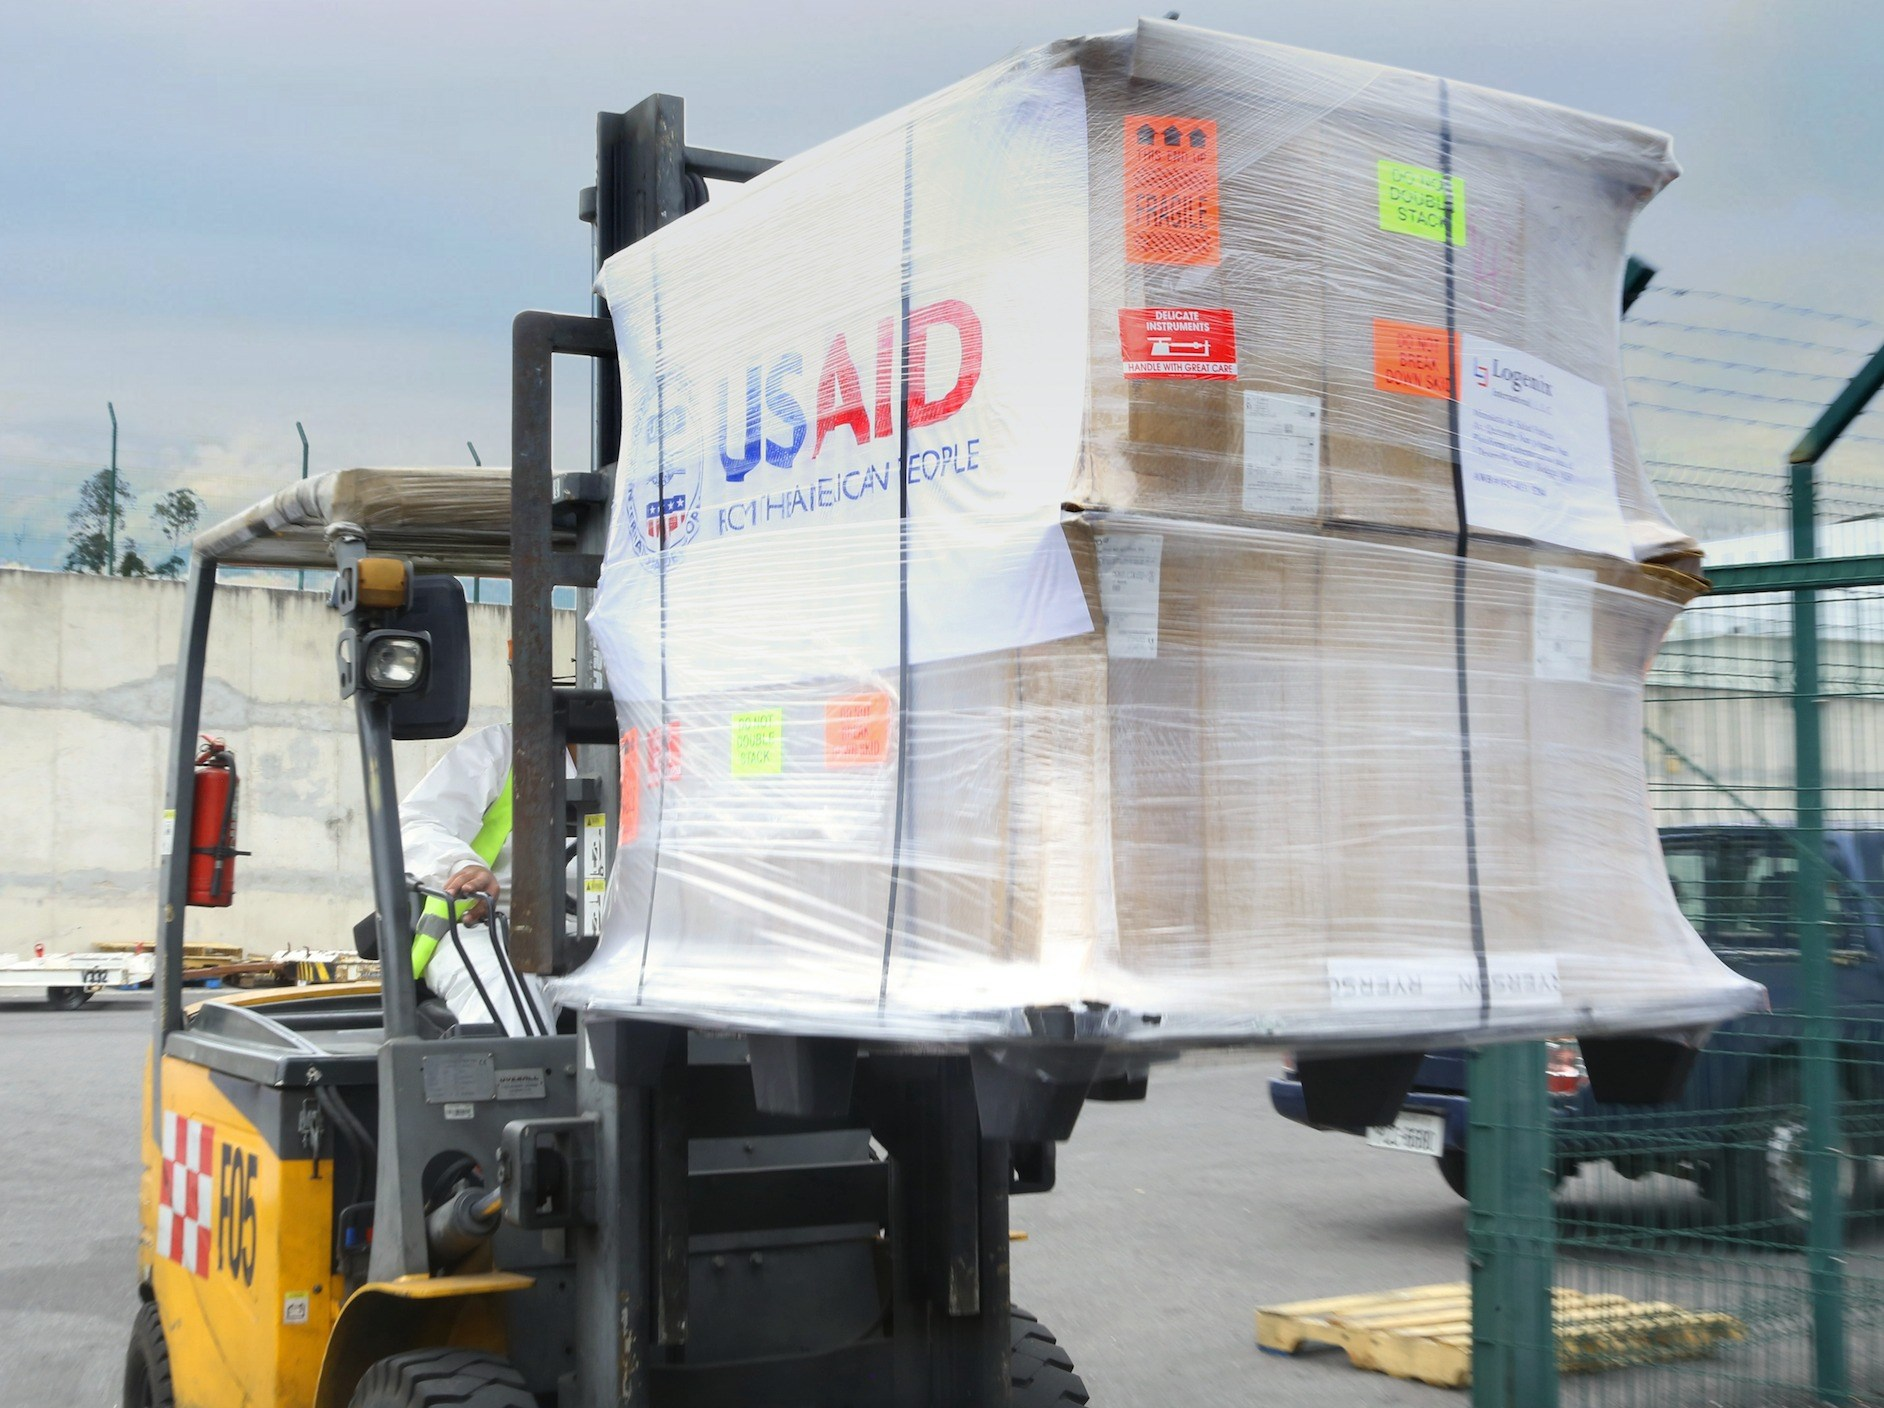 United States Provides Ventilators to Saves Lives in Ecuador in Response to COVID-19 Crisis